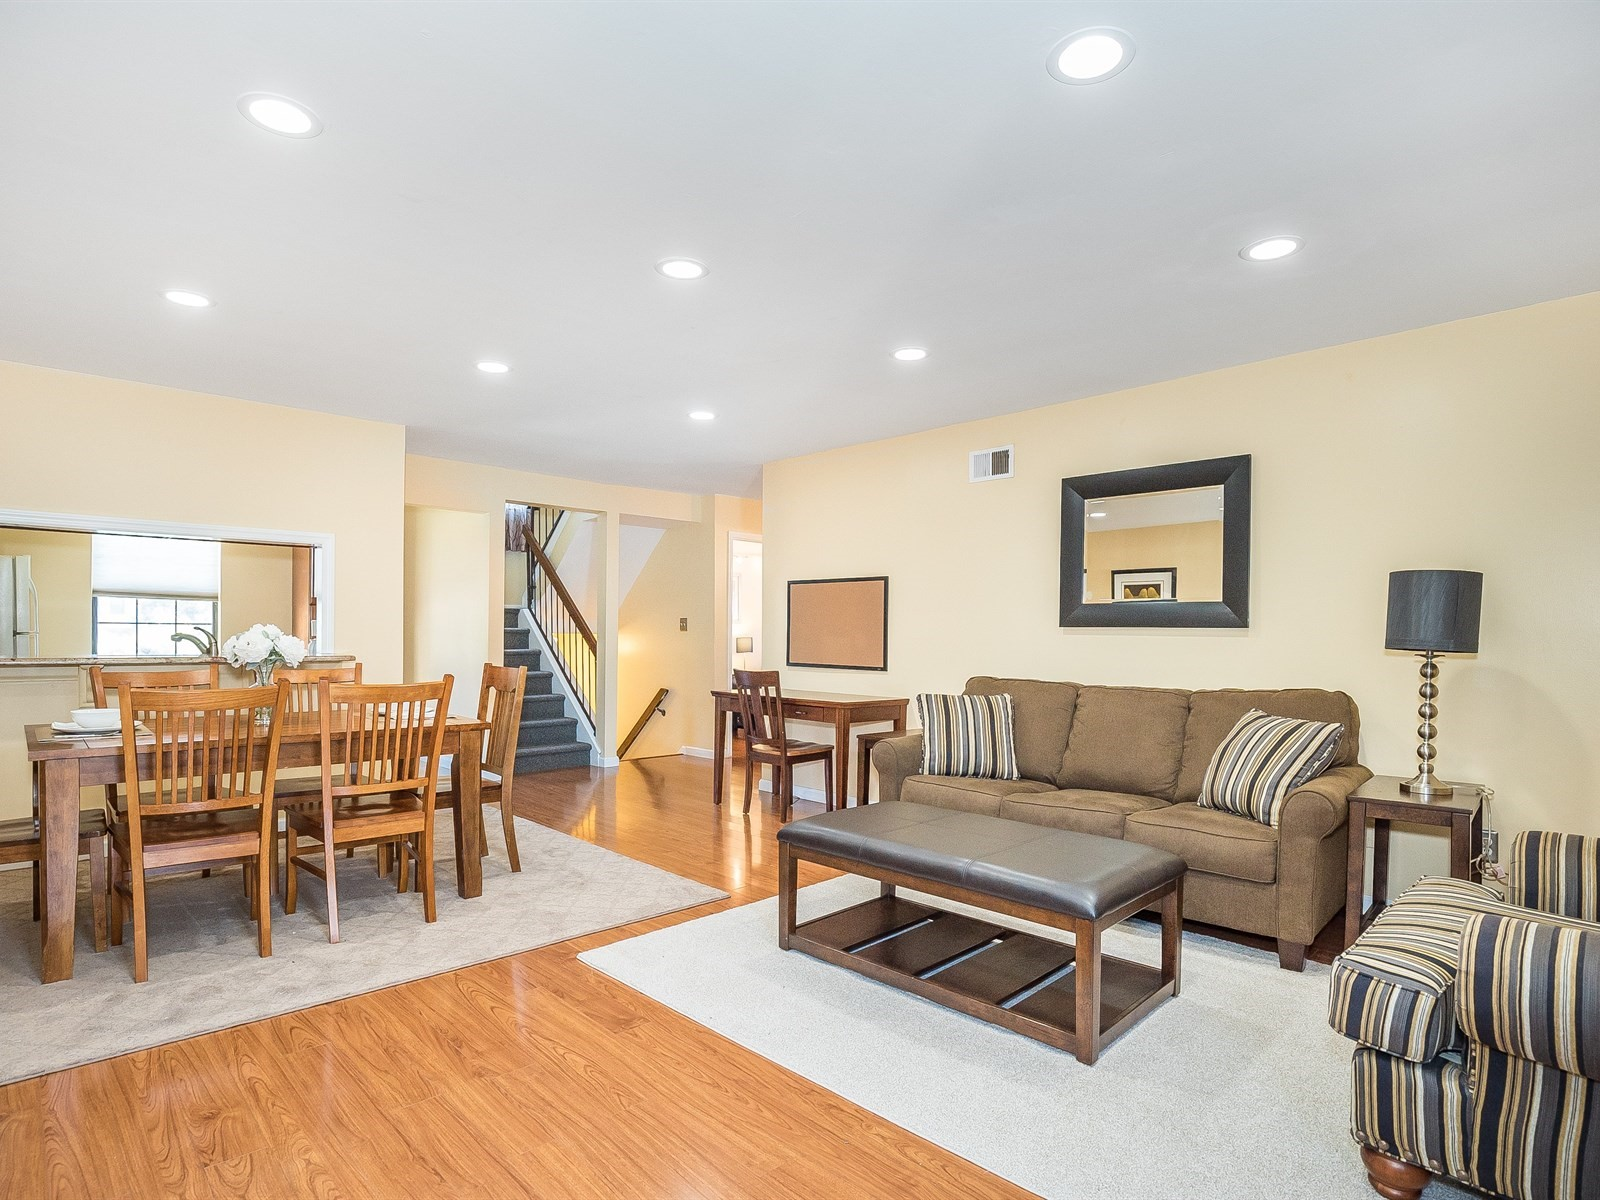 Woodbridge 4 Temporary Housing spacious floorplan with living room, dining area and view to staircase